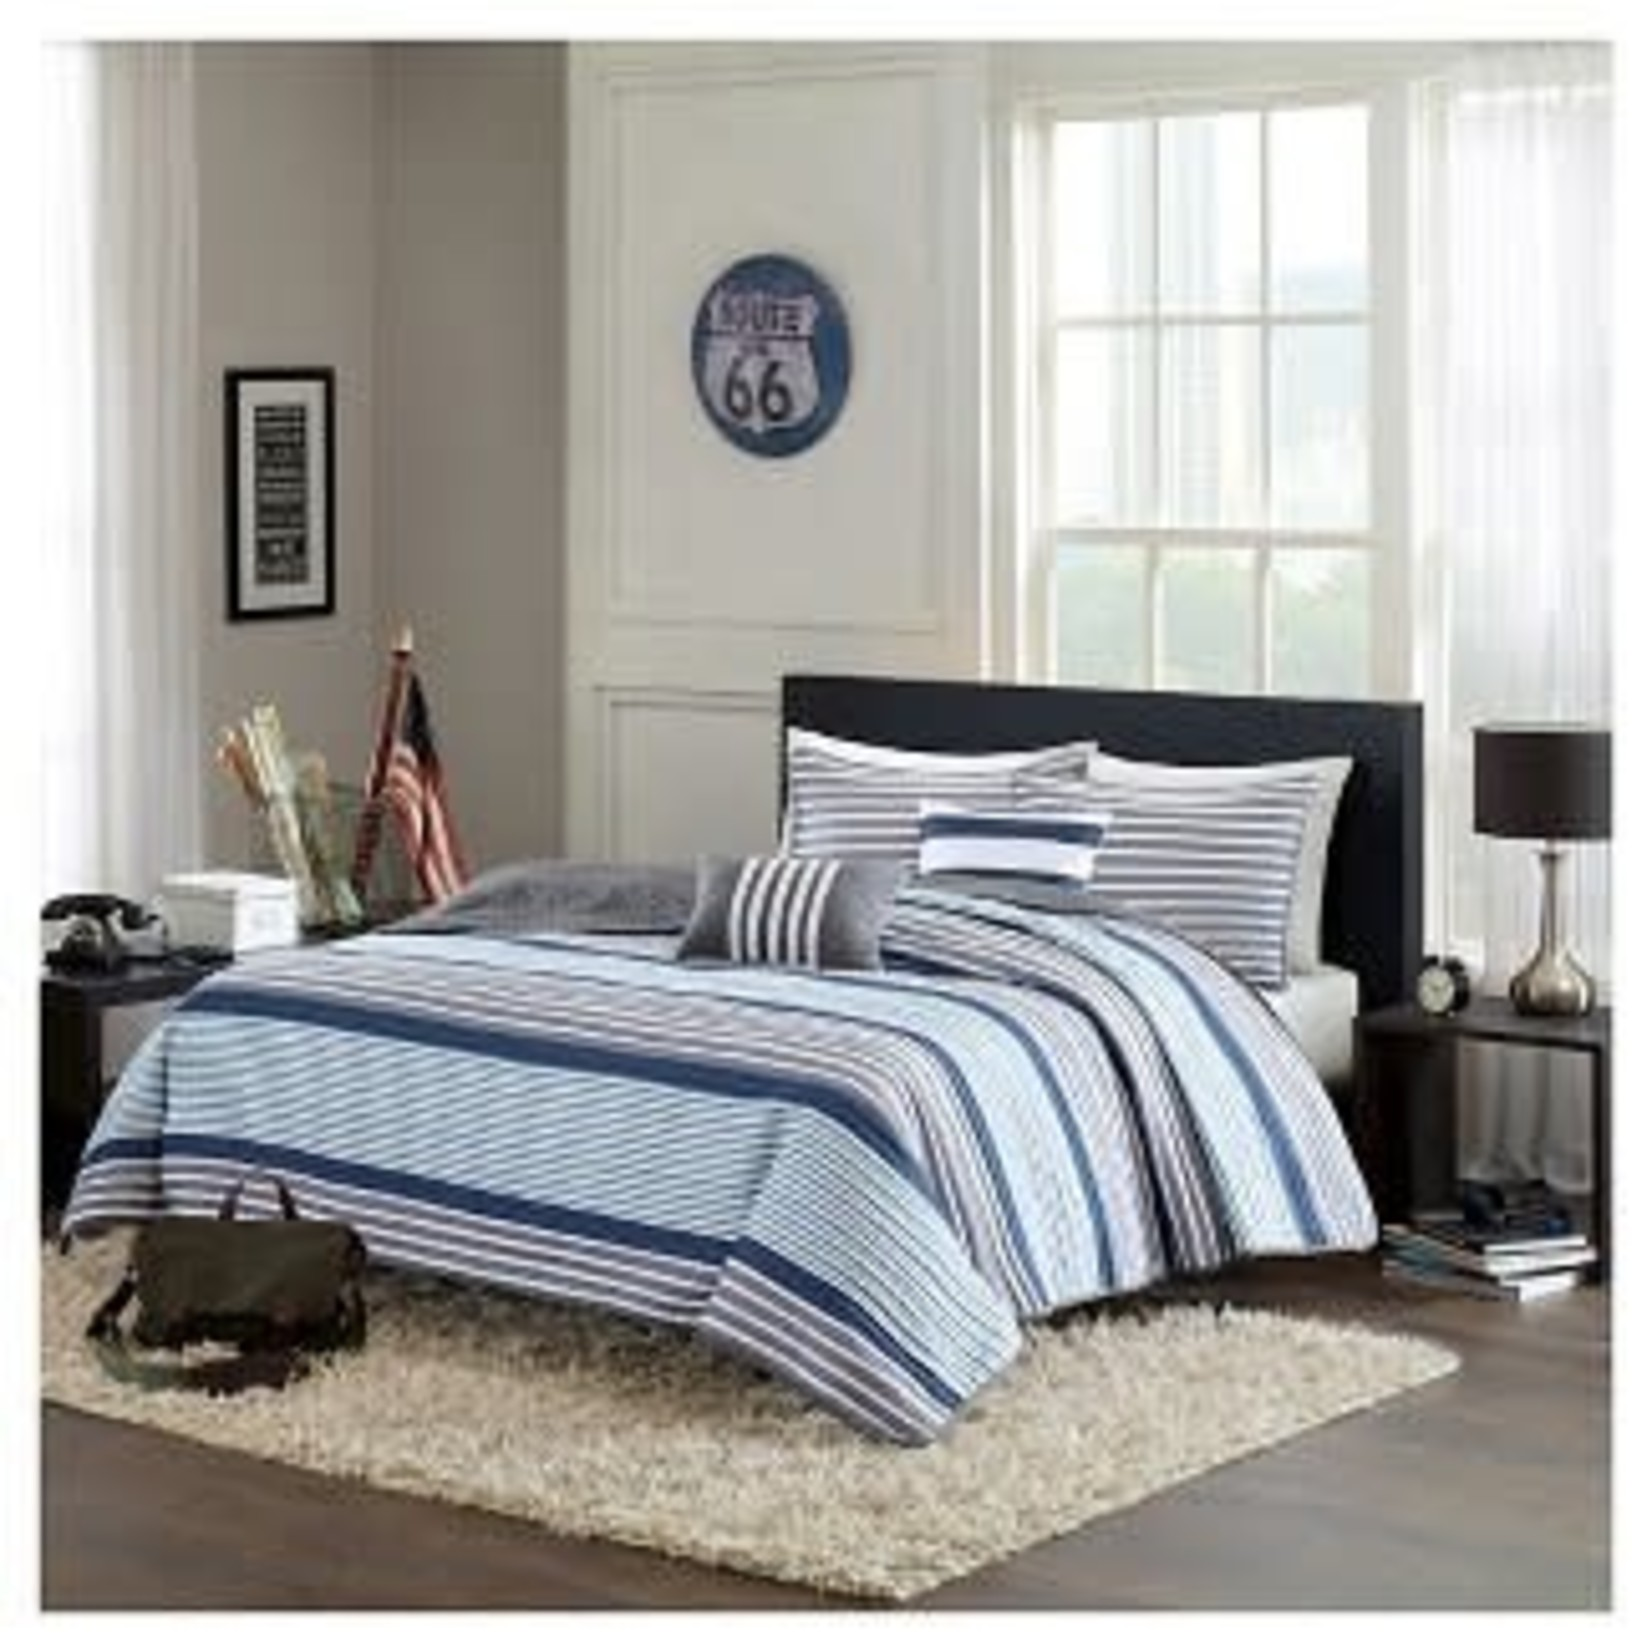 Blain Quilted Coverlet Bedding Set-Full/Queen